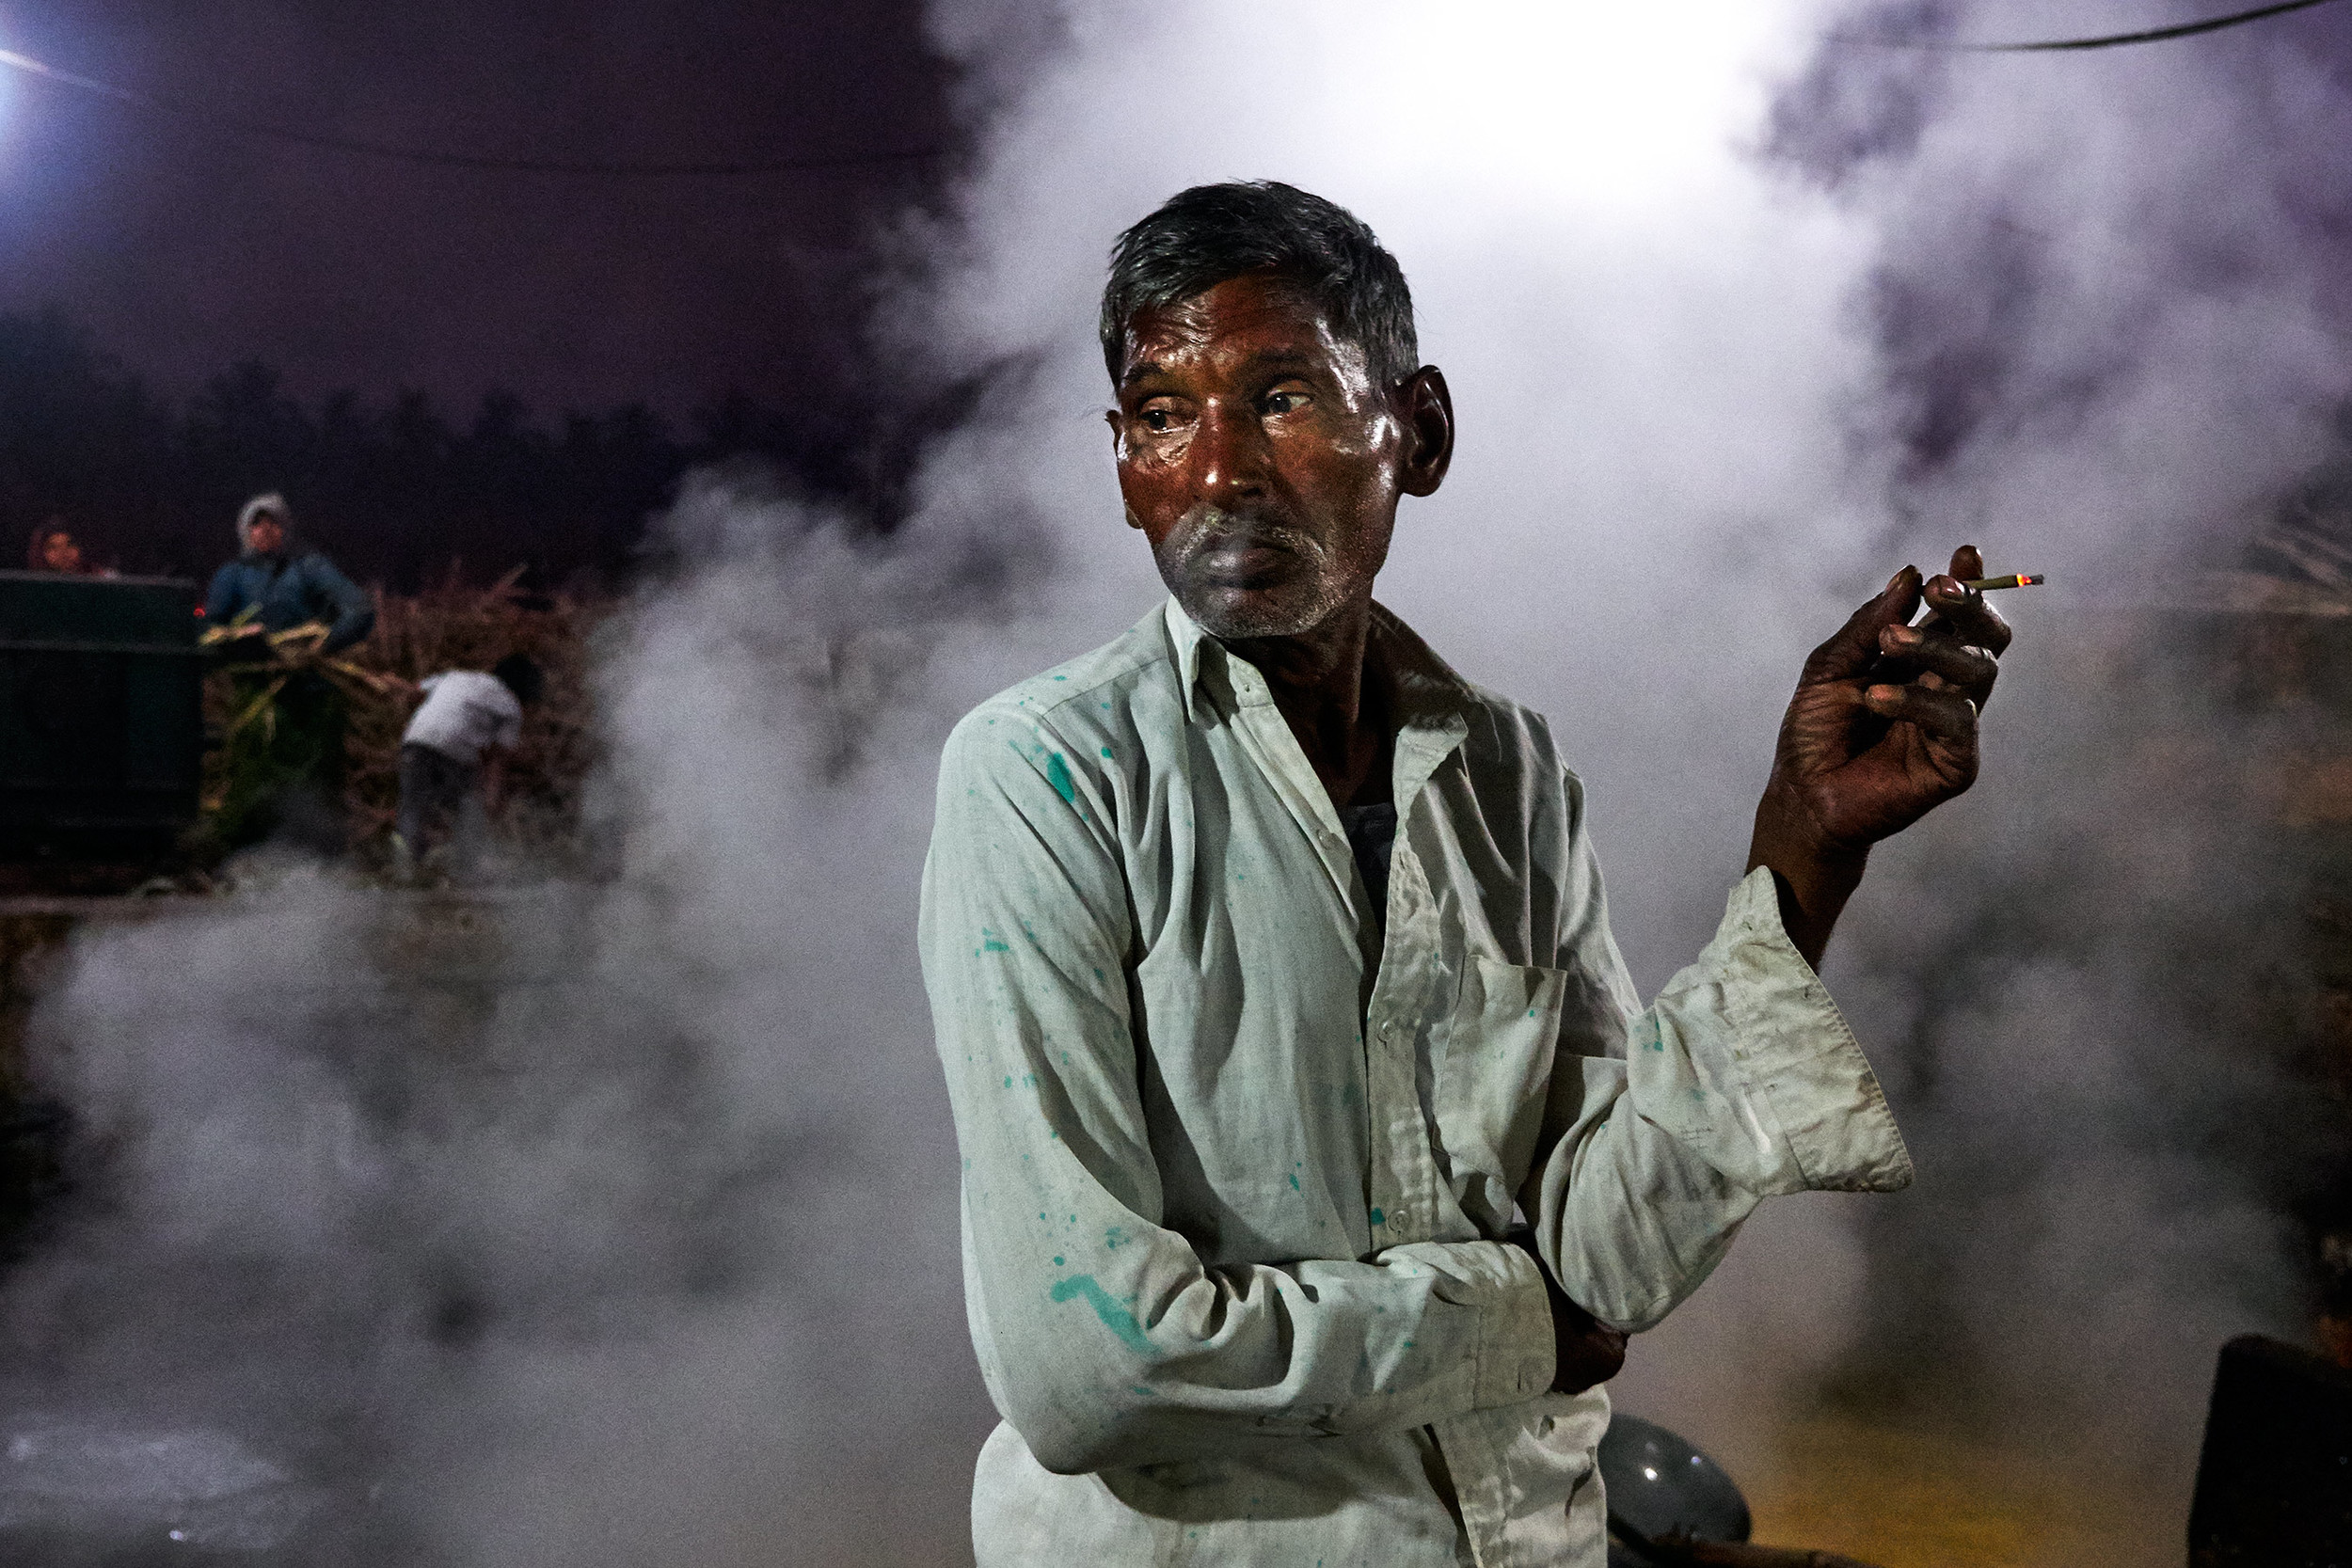 Sugarcane worker by the vat and smoke